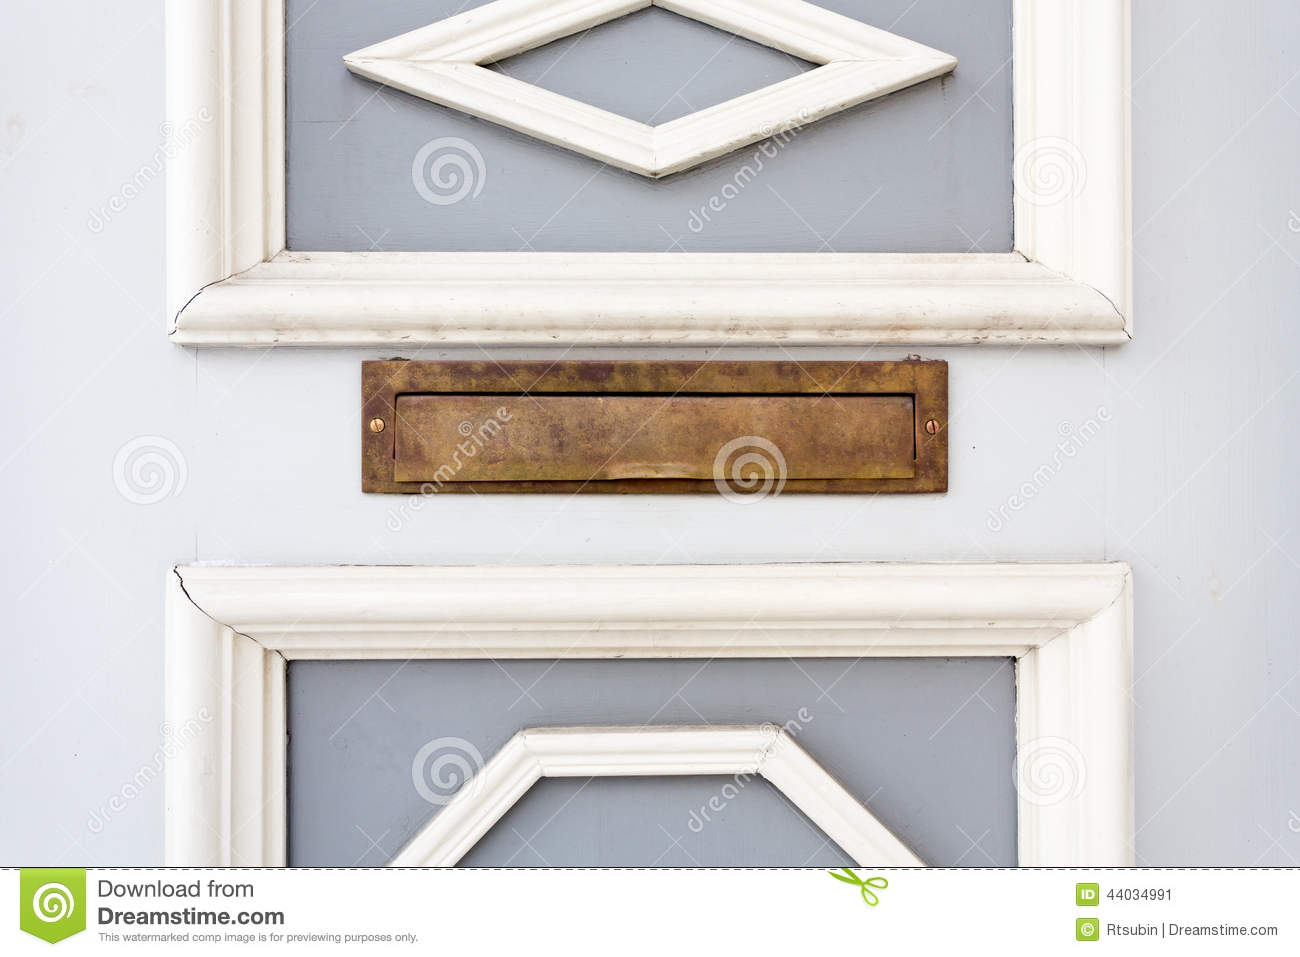 Mail slot in wood door stock image. Image of close, material ...